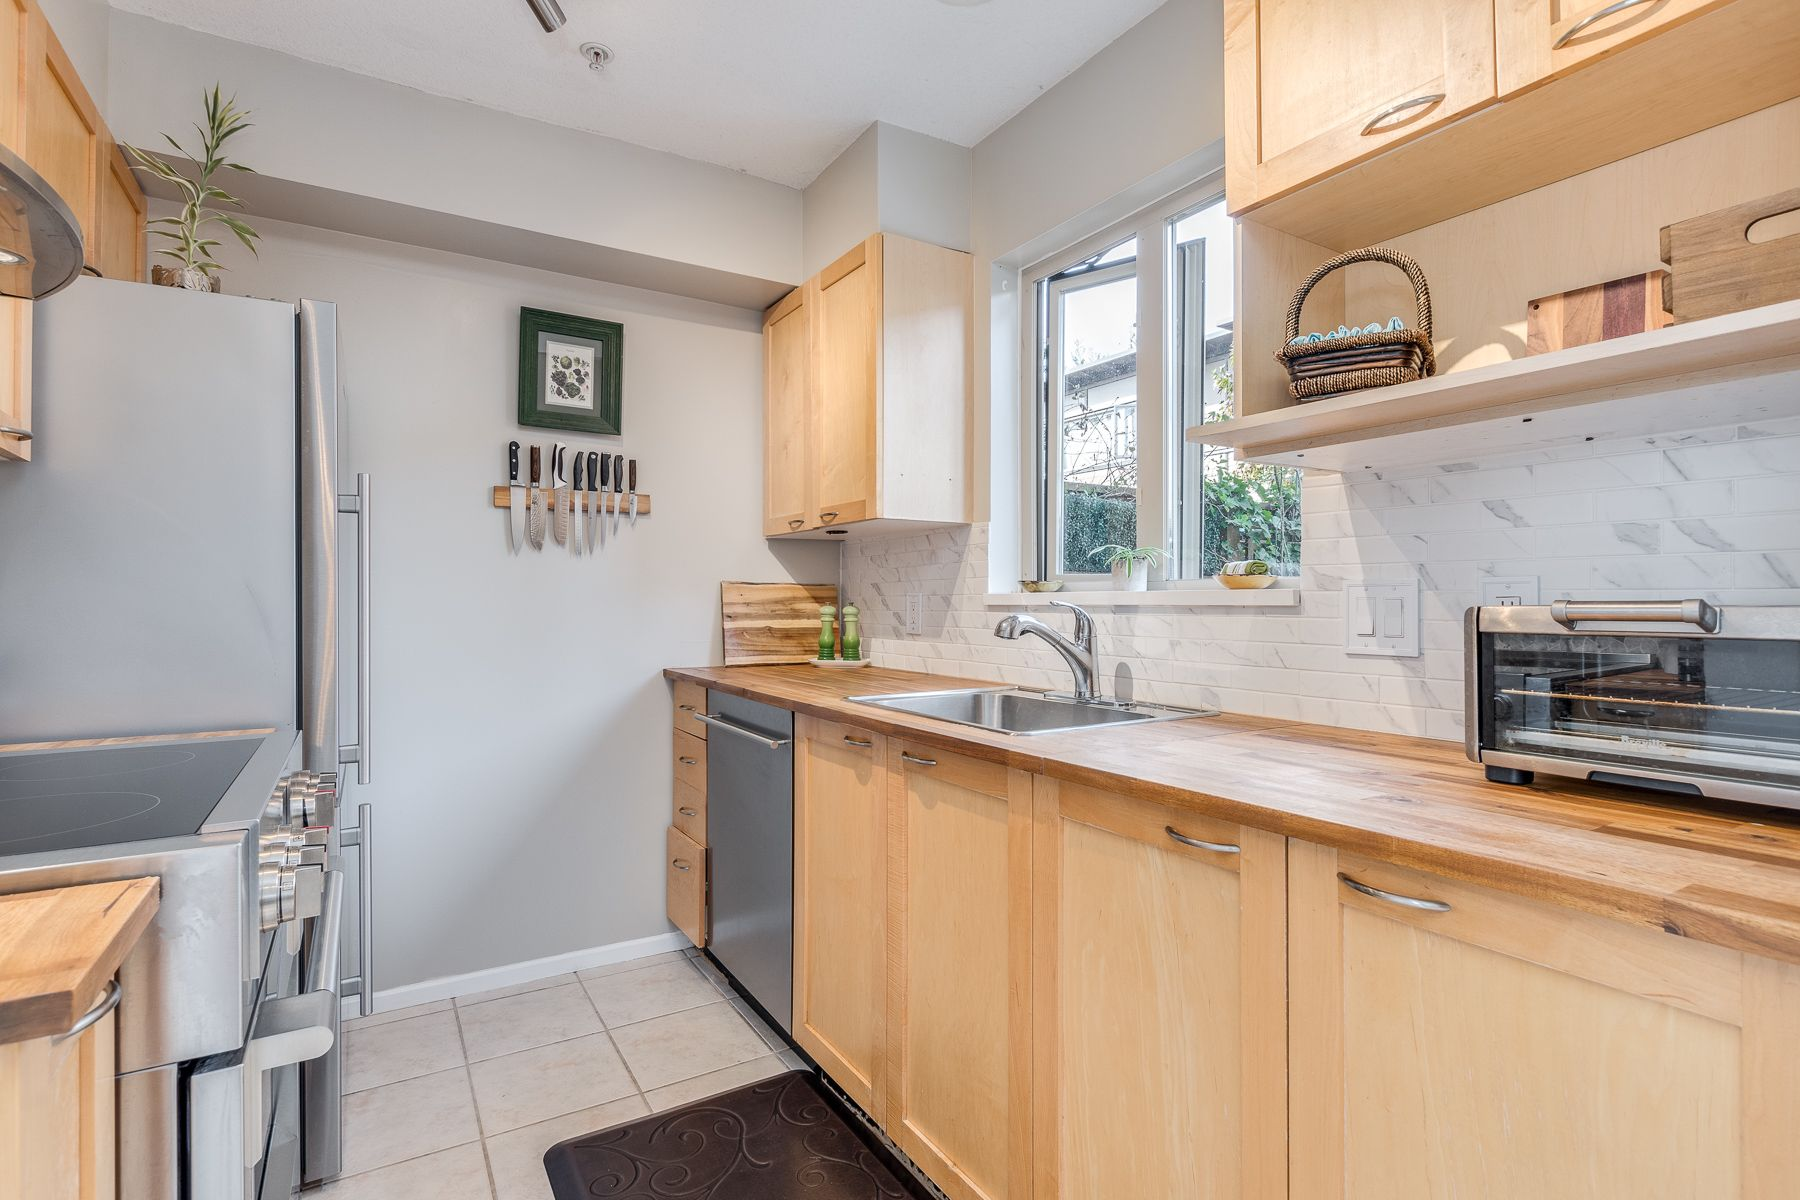 Photo 17: Photos: 7-2389 Charles St in Vancouver: Grandview Woodland Townhouse for sale (Vancouver East)